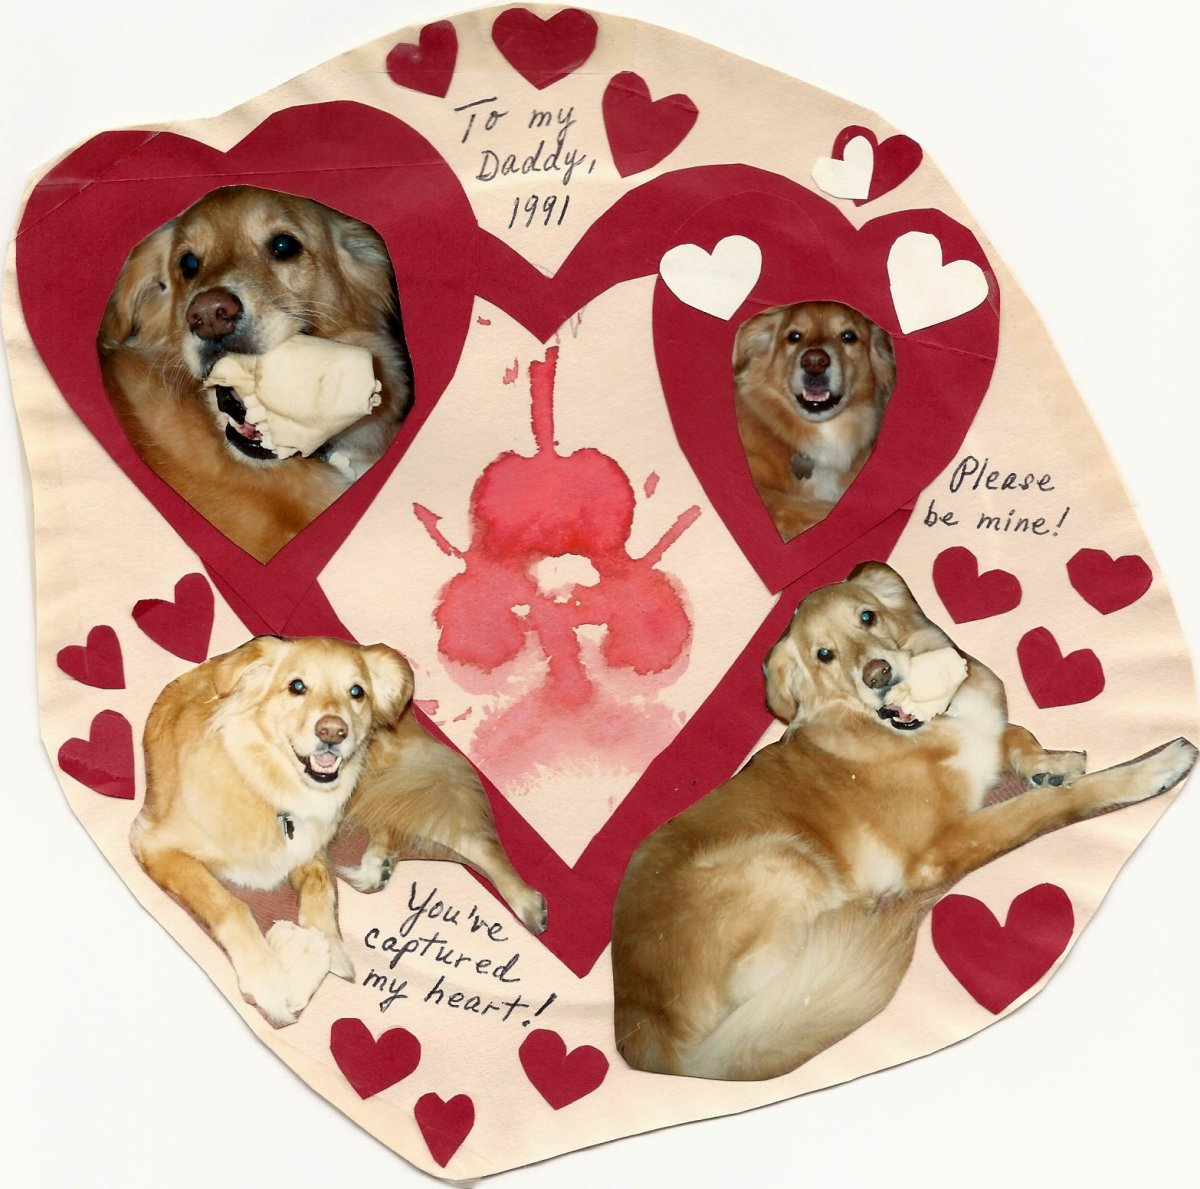 Reggie's Valentine Card with Paw Print